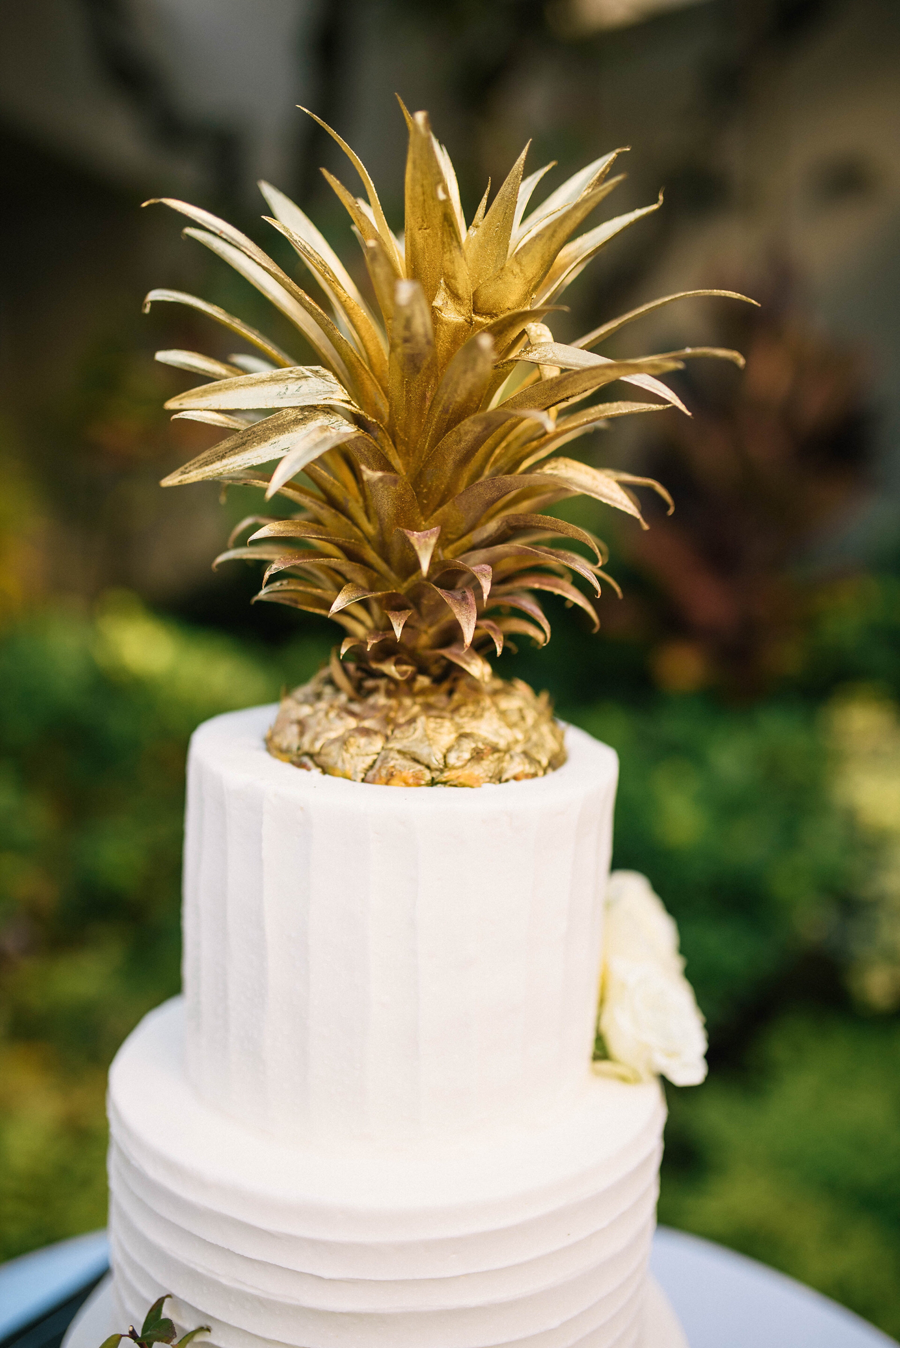 Gold Pineapple Cake Topper Pineapple Cake Topper Pineapple Cake Luau Cakes